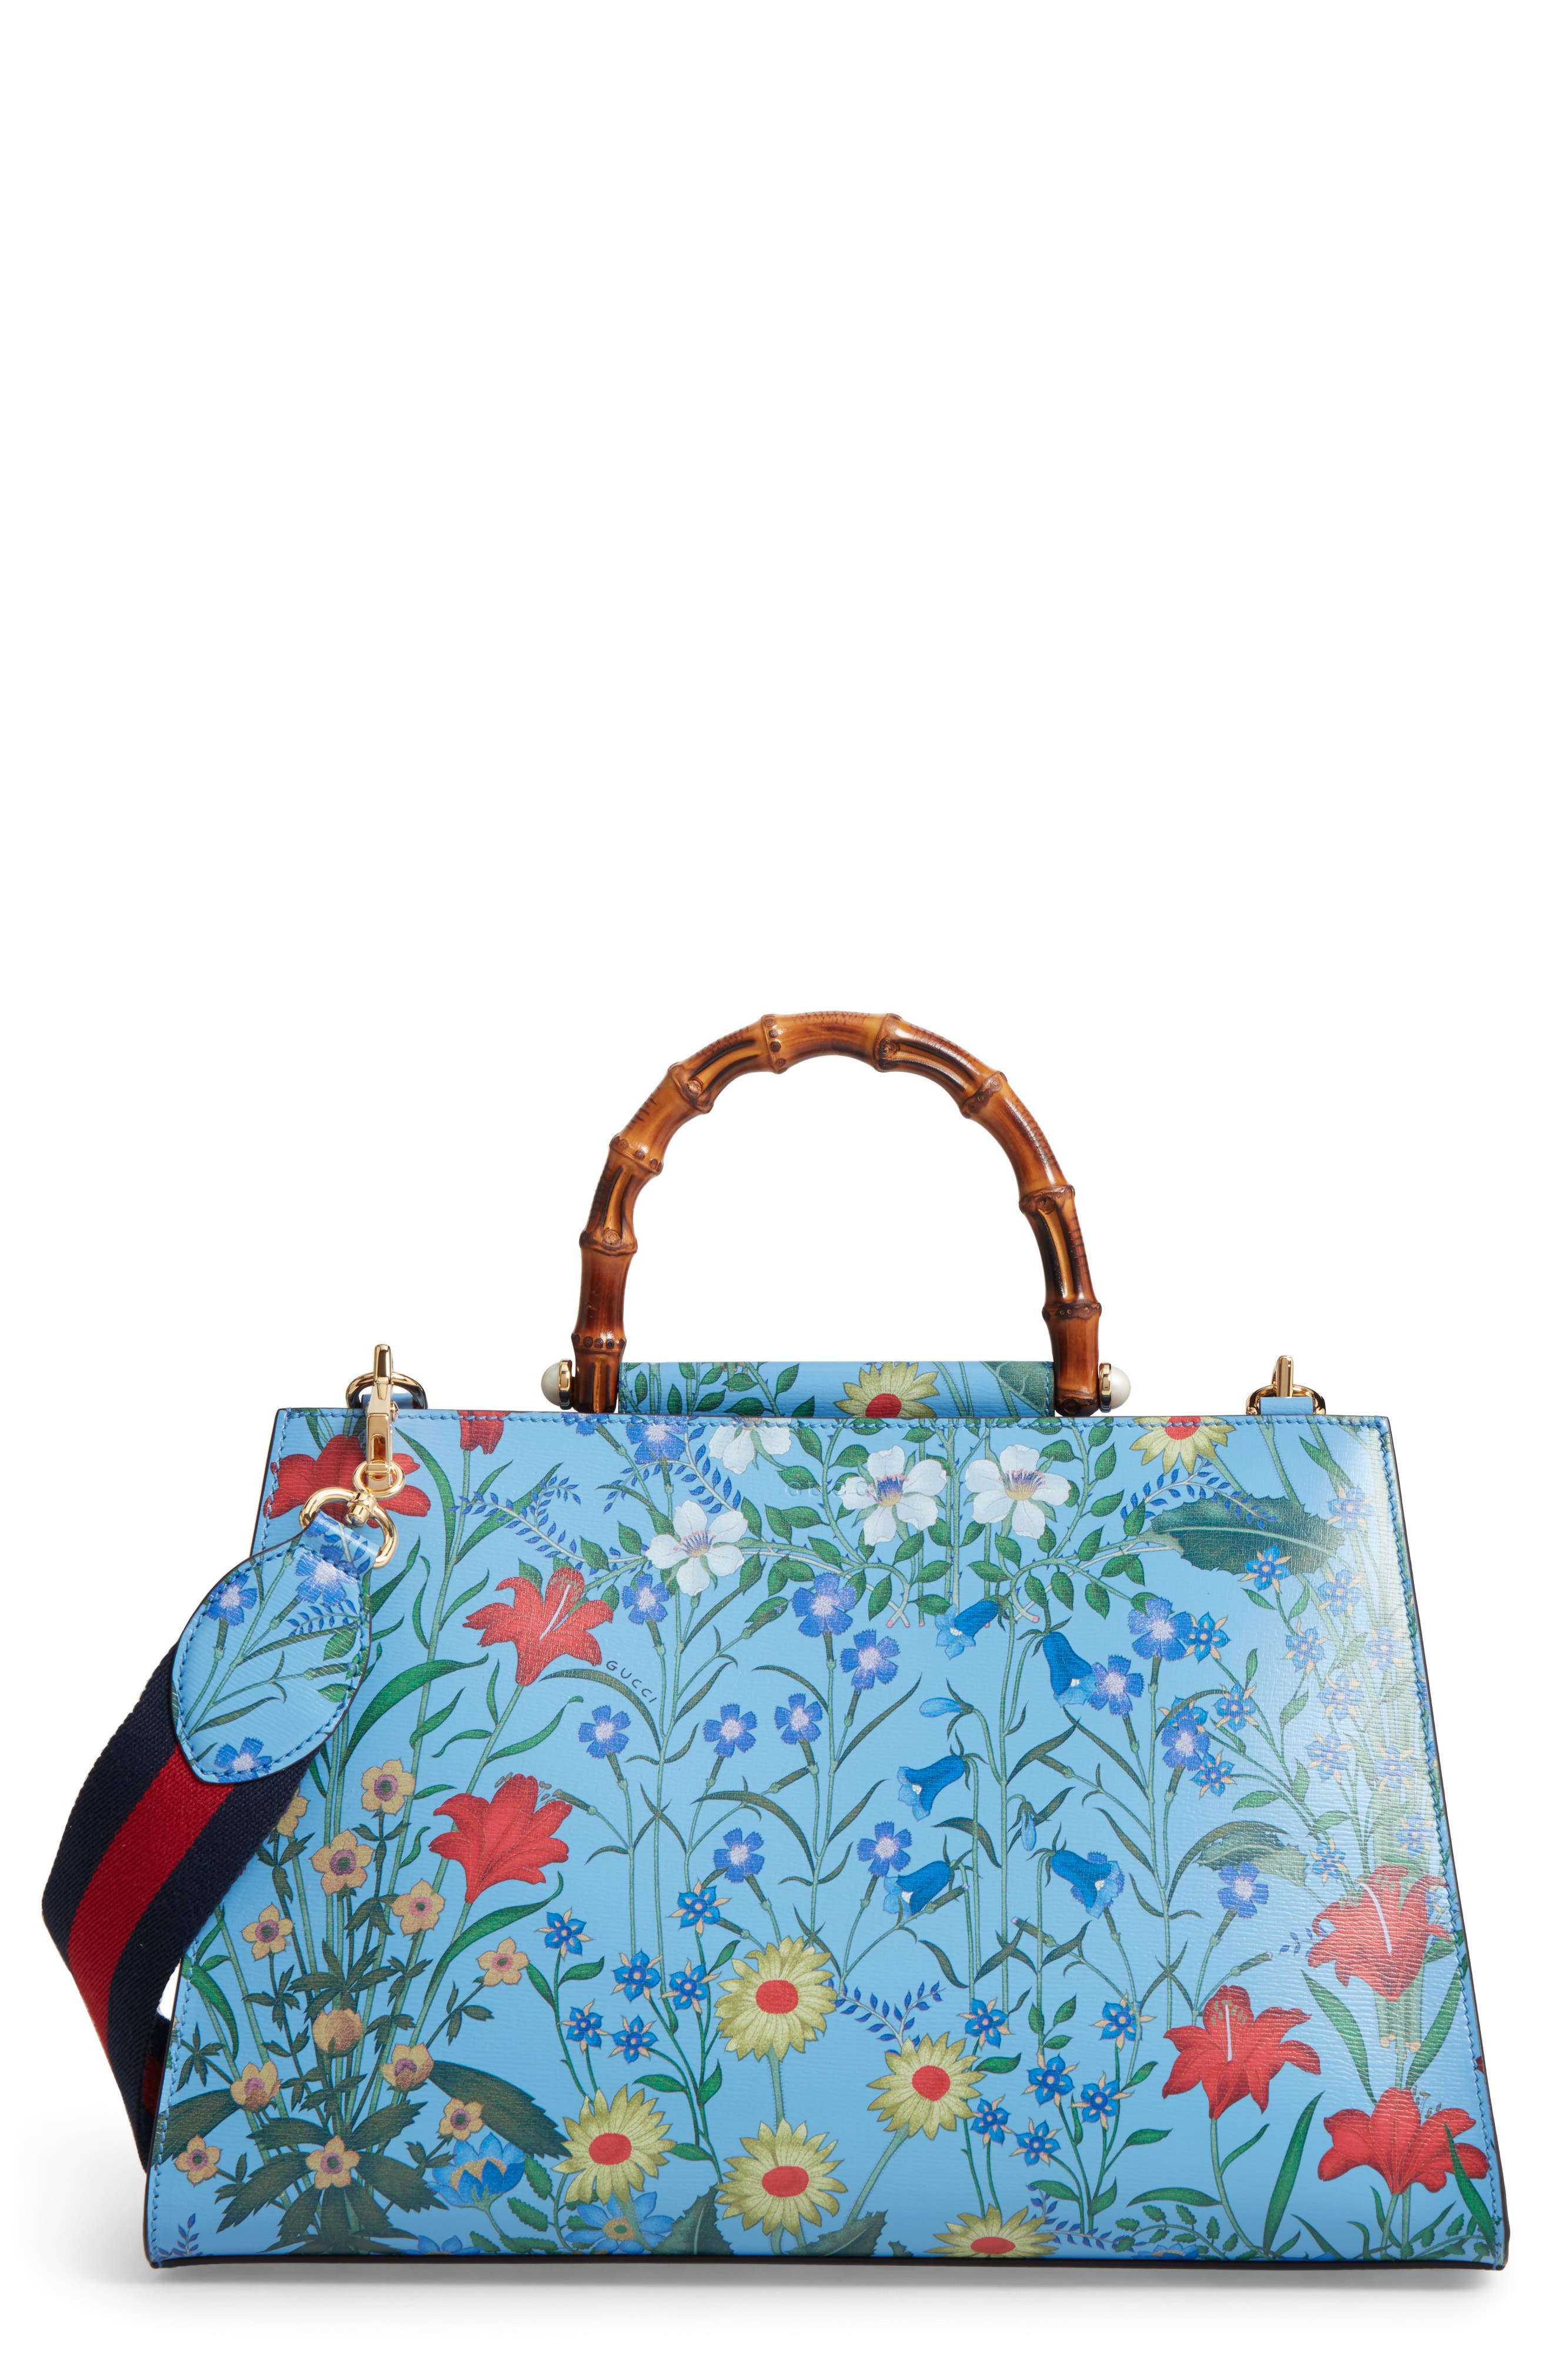 Gucci Large Nymphaea New Flora Print Leather Top Handle Tote